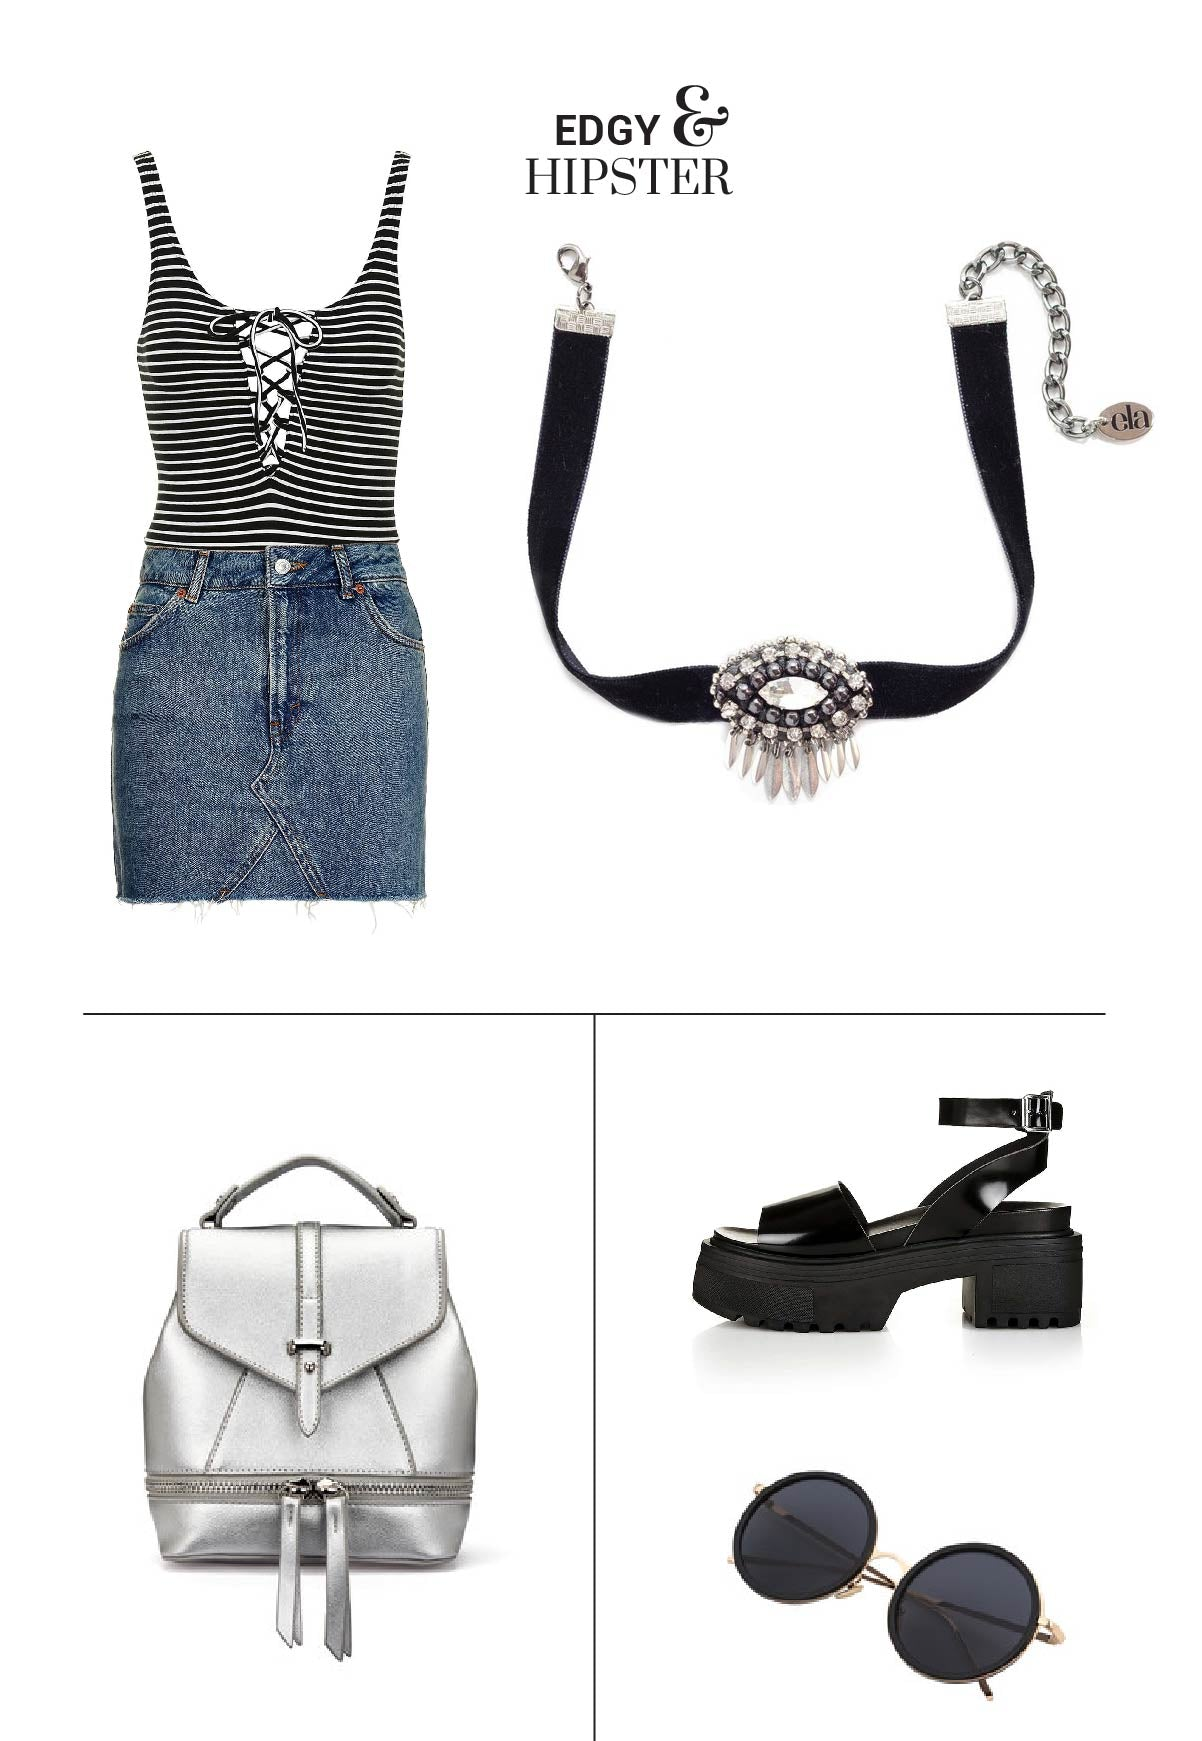 How to style a choker necklace - Combine this choker necklace with your outfit to match your edgy and hipster style!